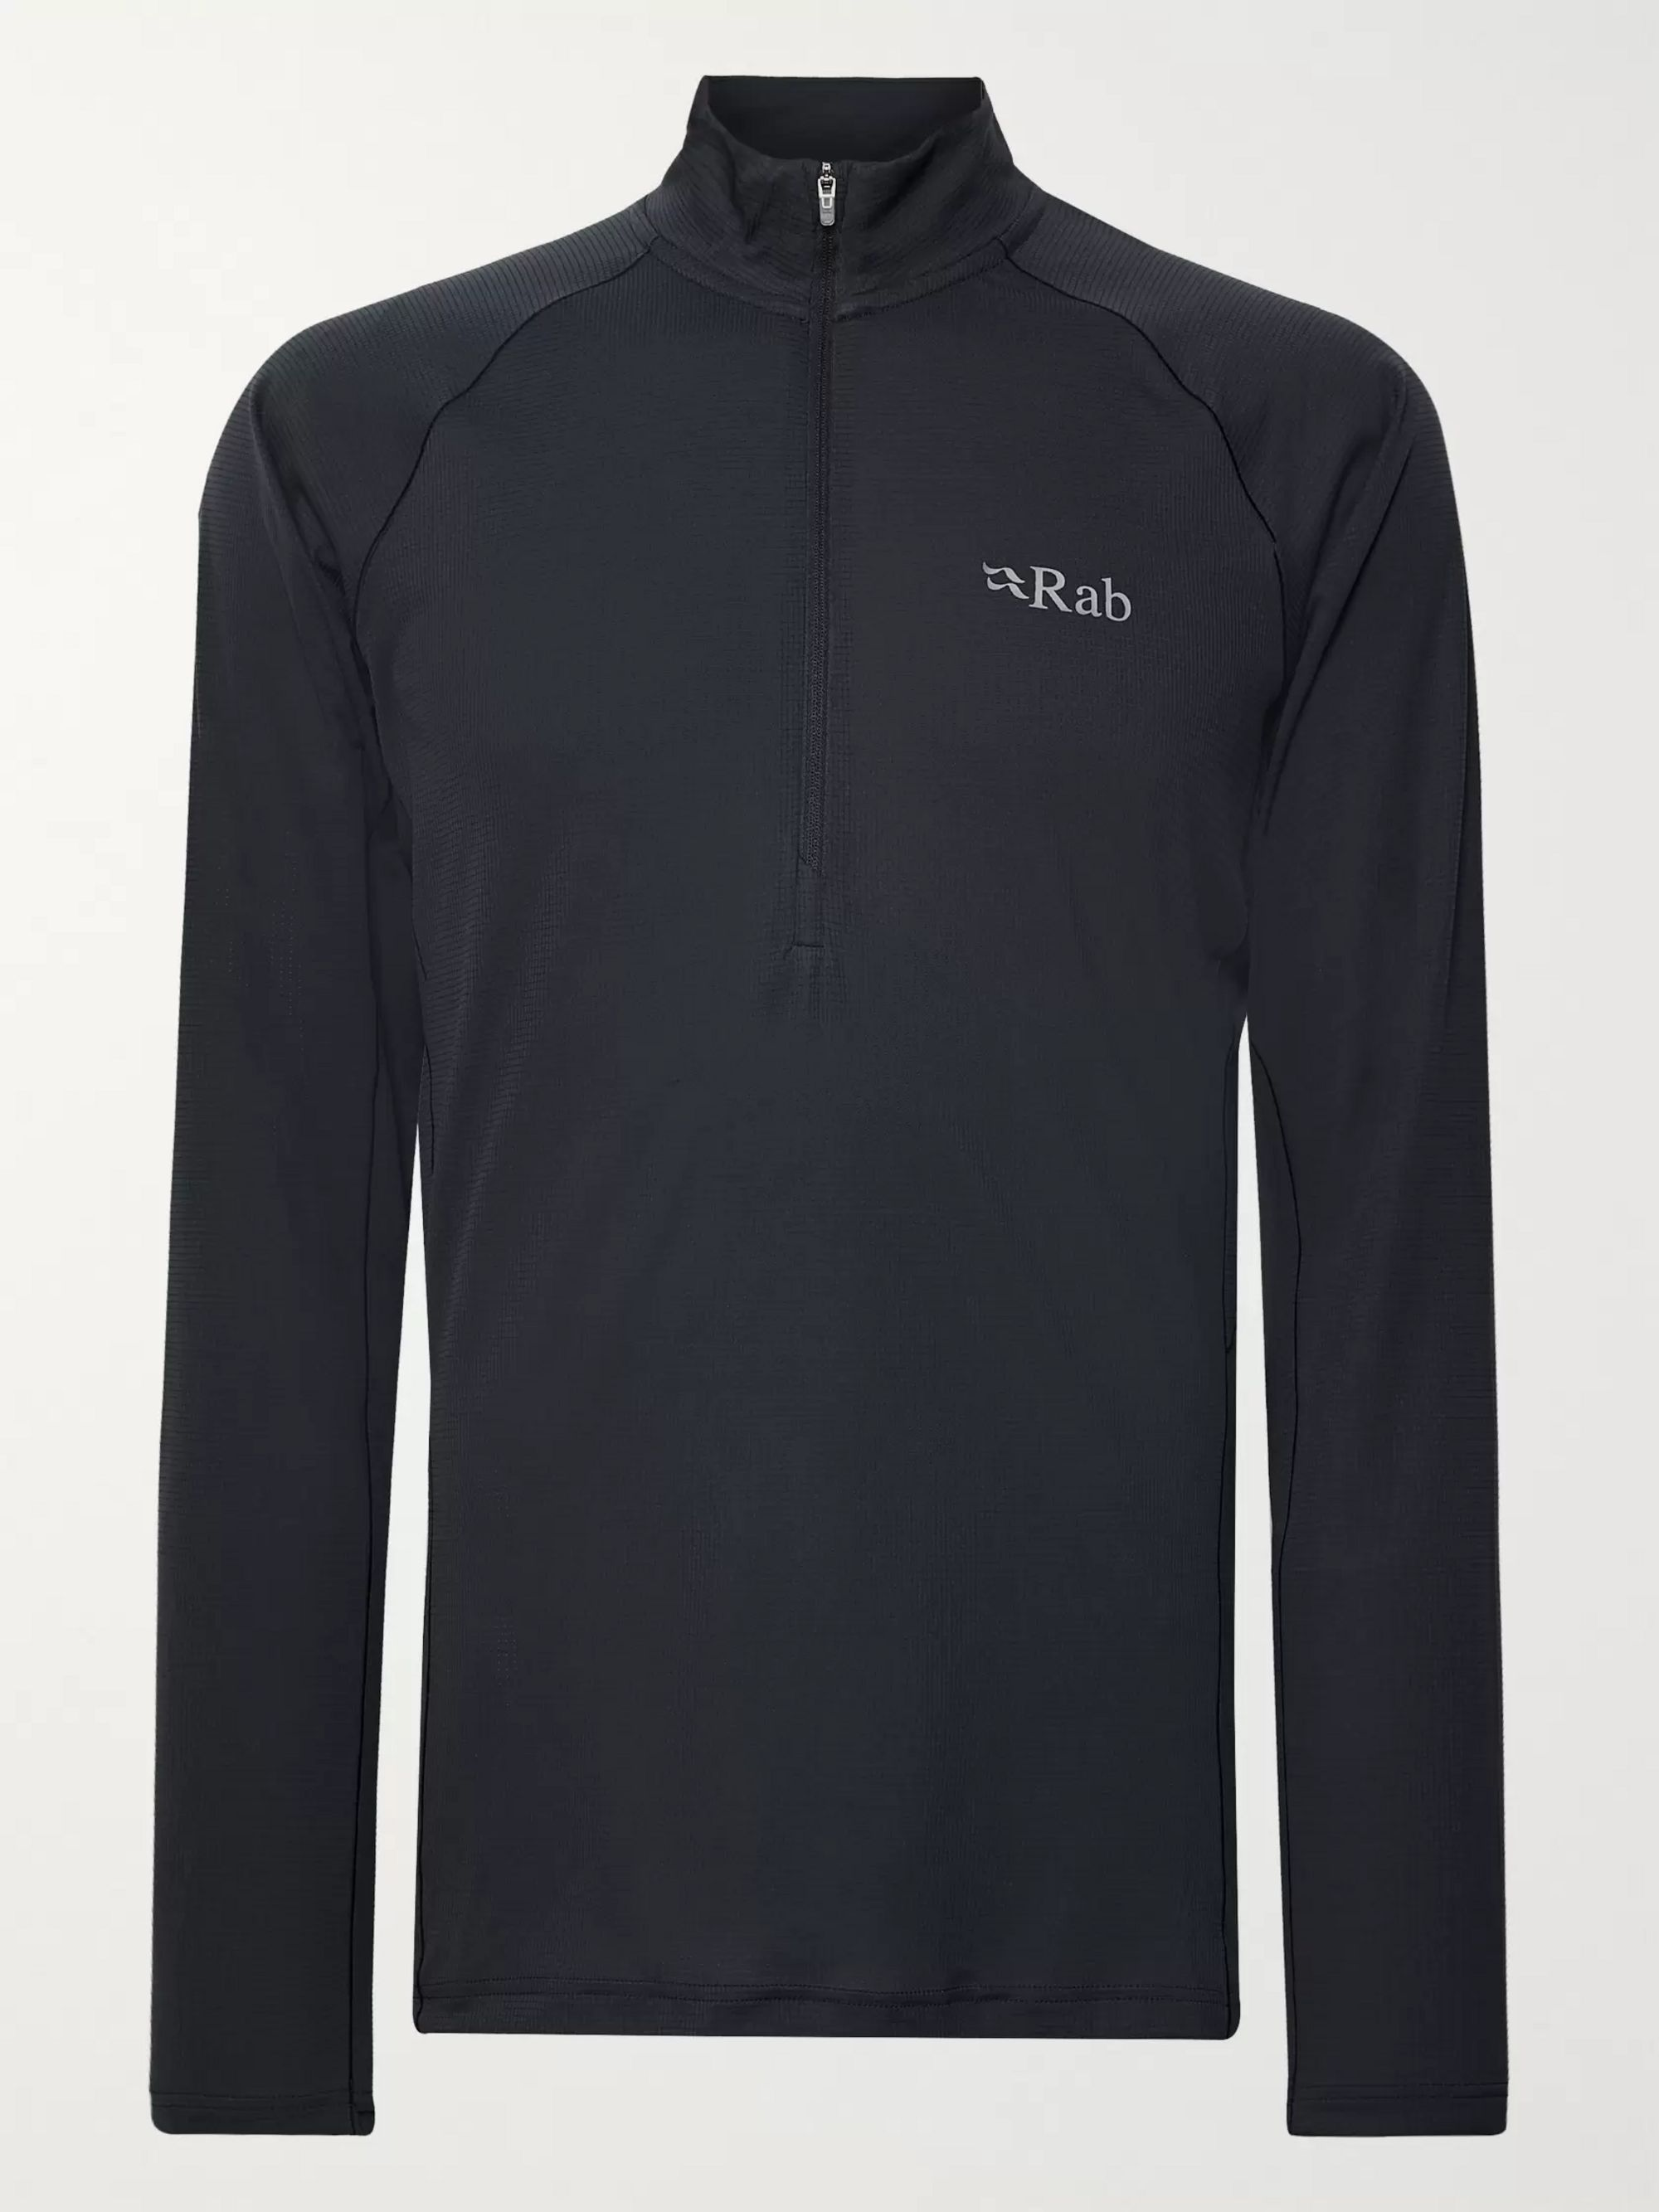 Rab Pulse Motiv Half-Zip Top